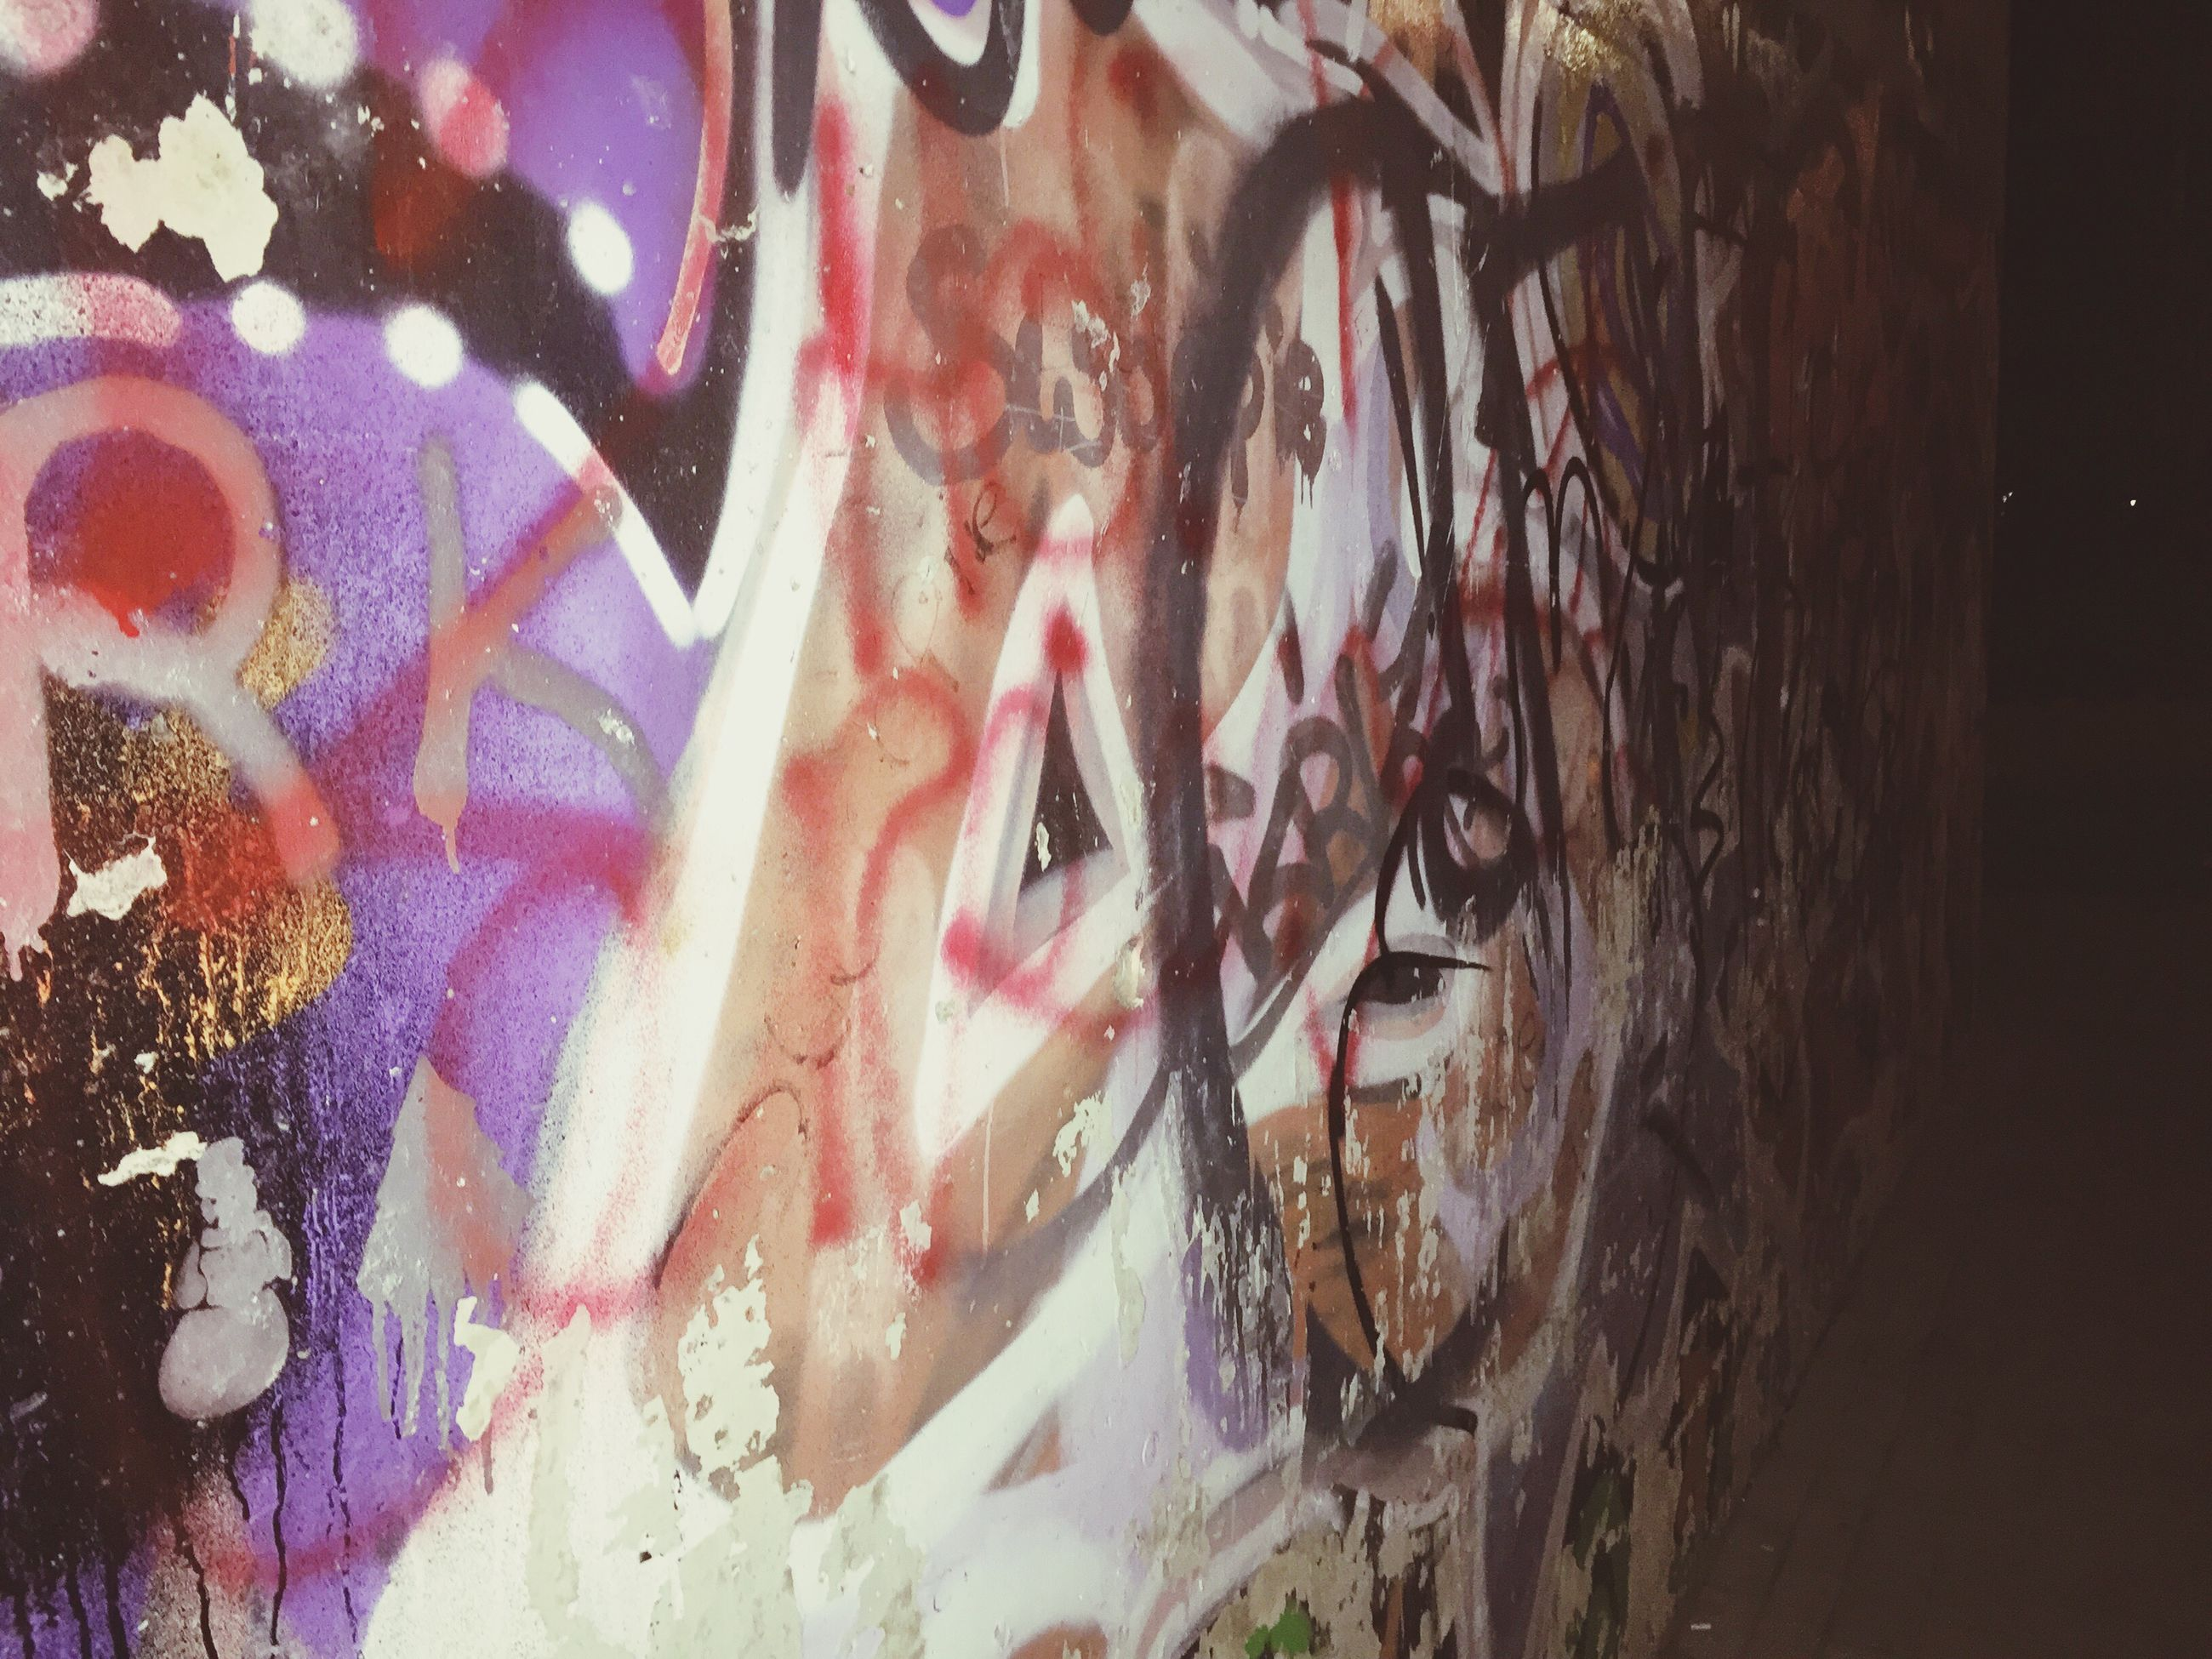 graffiti, art and craft, creativity, wall - building feature, art, indoors, built structure, architecture, multi colored, abandoned, messy, no people, damaged, wall, day, close-up, building exterior, old, obsolete